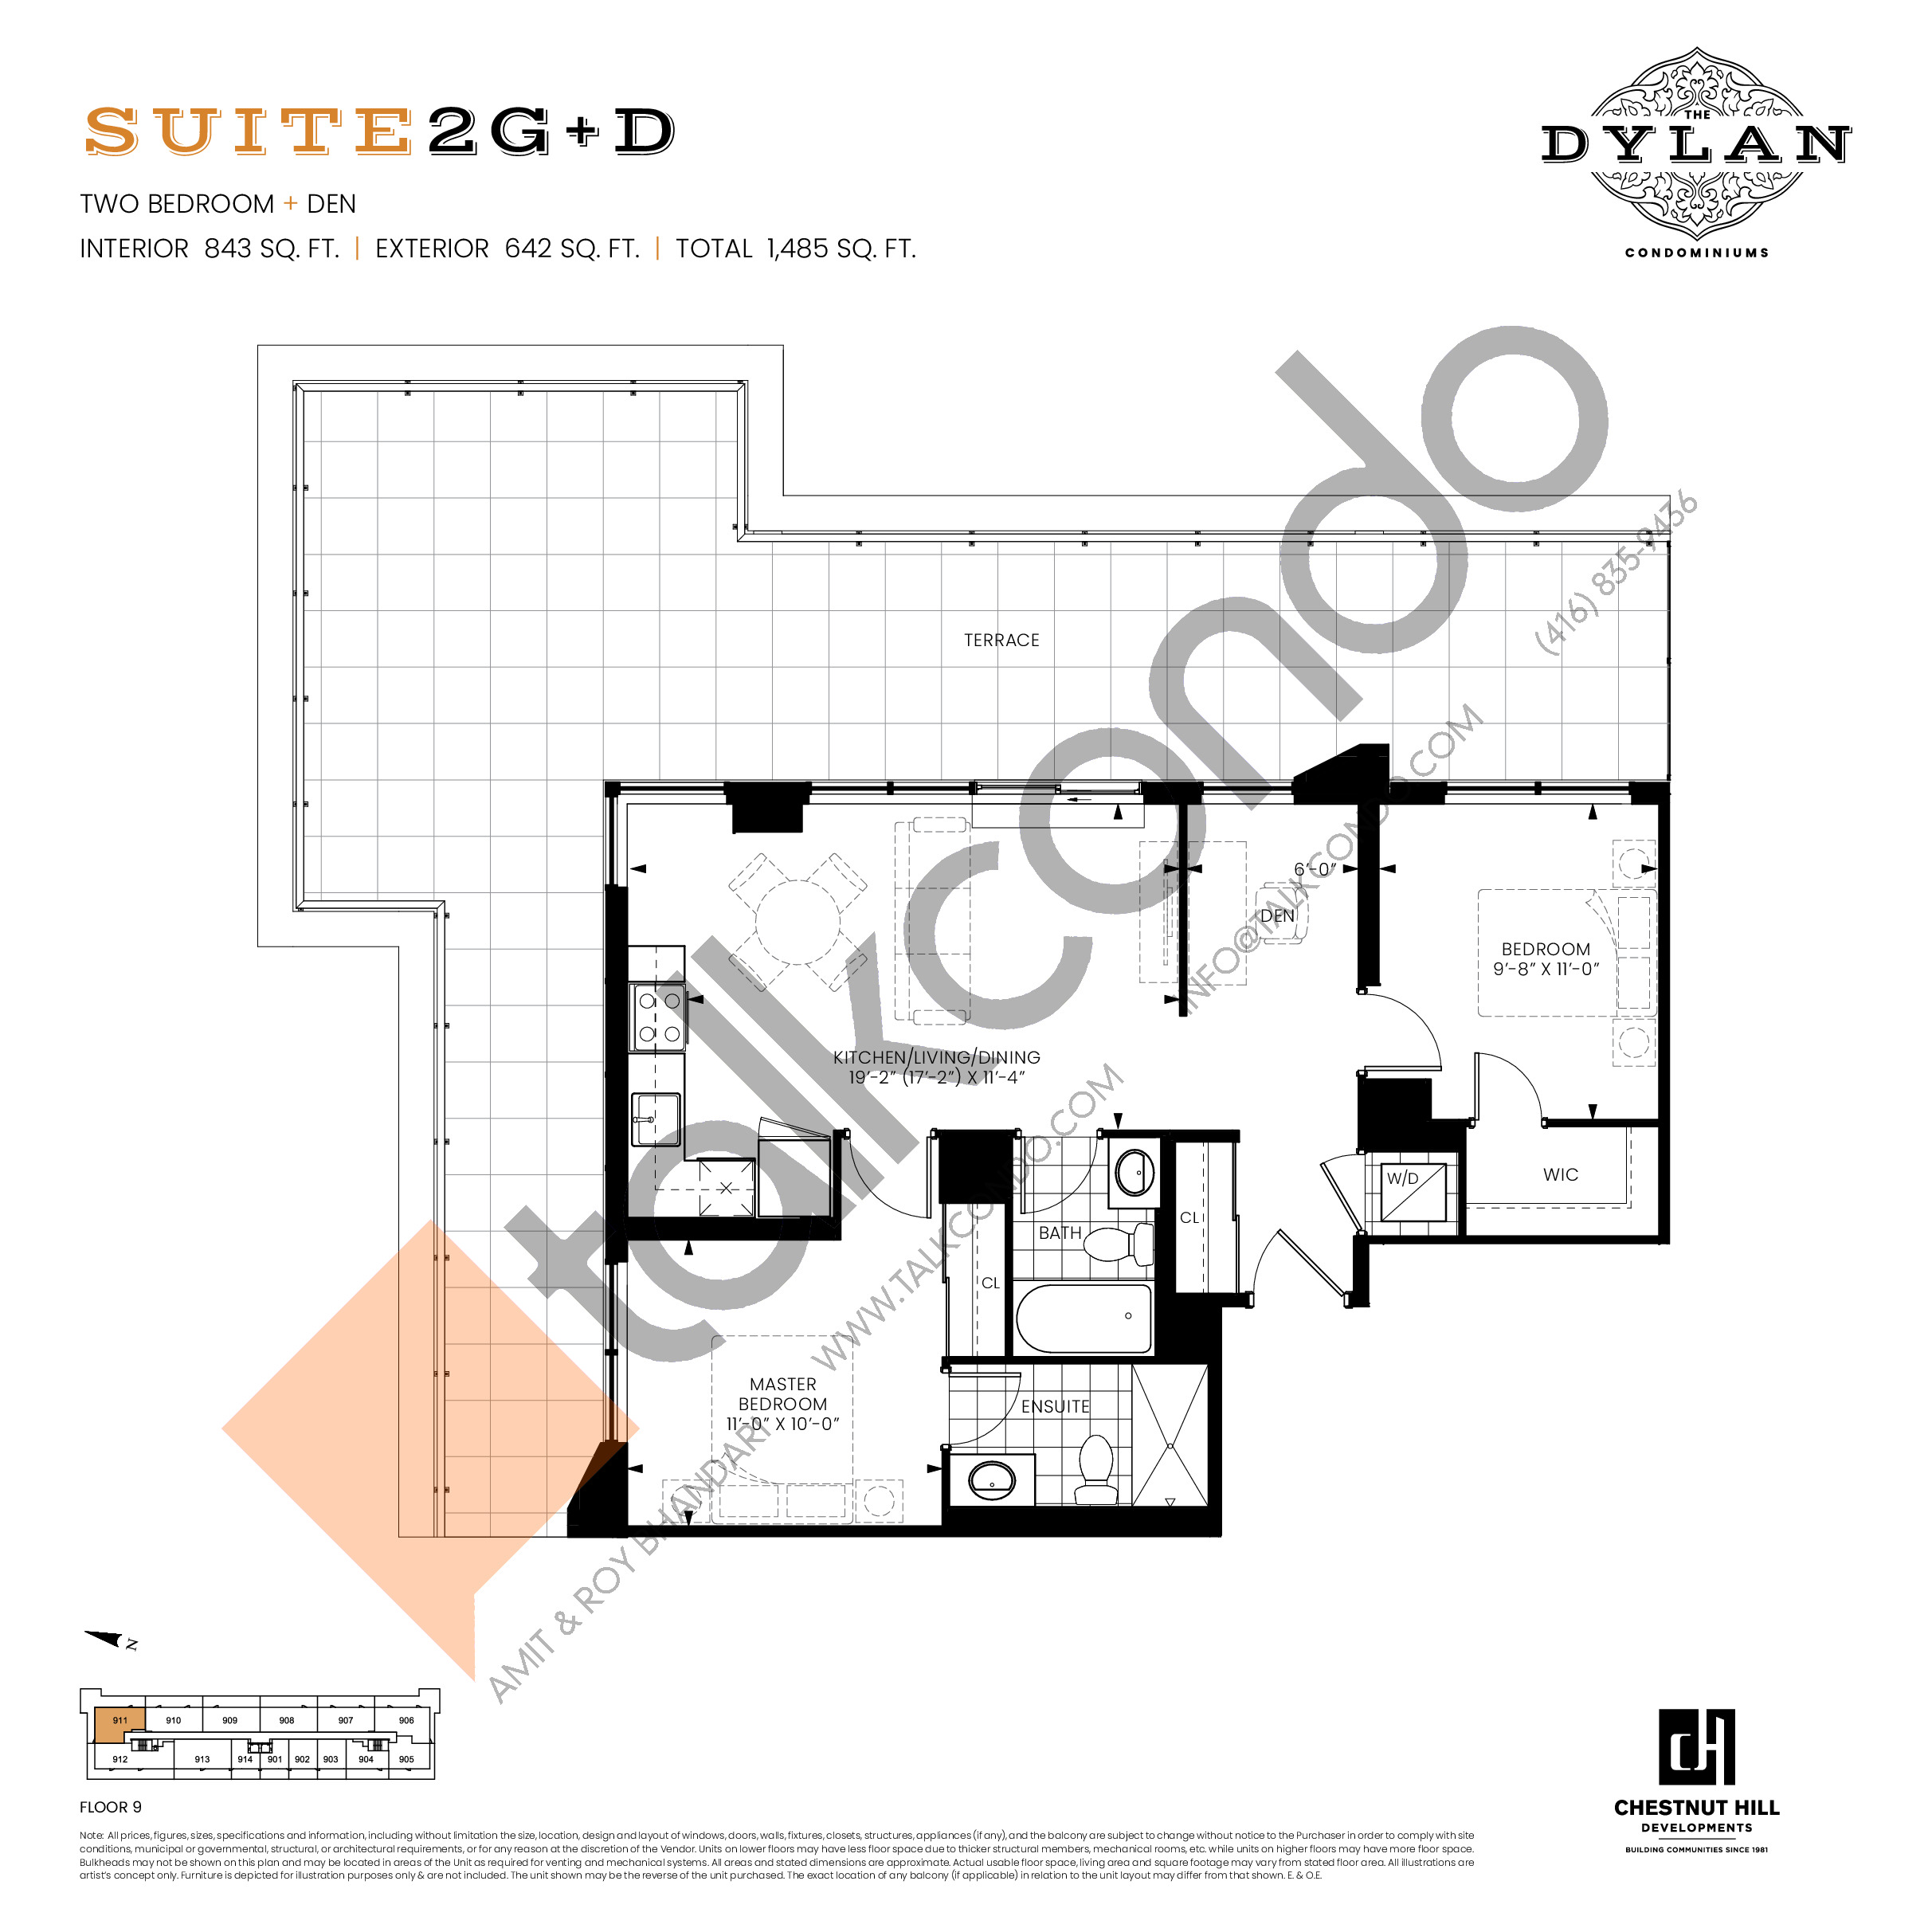 Suite 2G+D Floor Plan at The Dylan Condos - 843 sq.ft